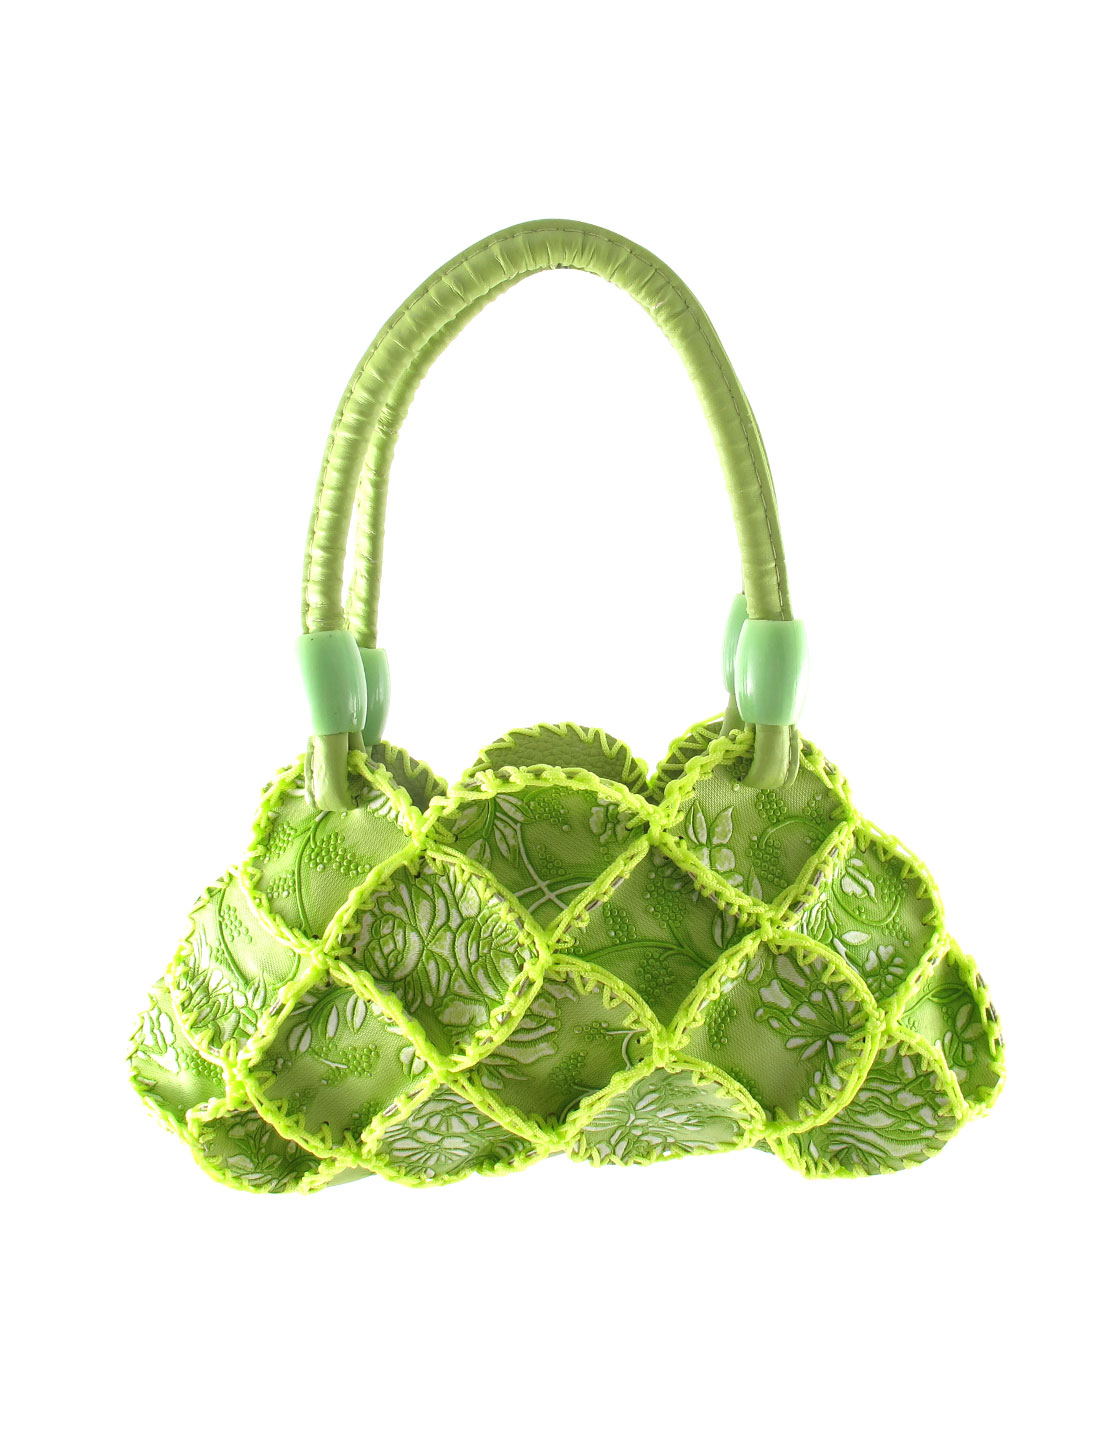 Lady Faux Leather Braided Flowers Detail Handmade Satchel Bag Handbag Green